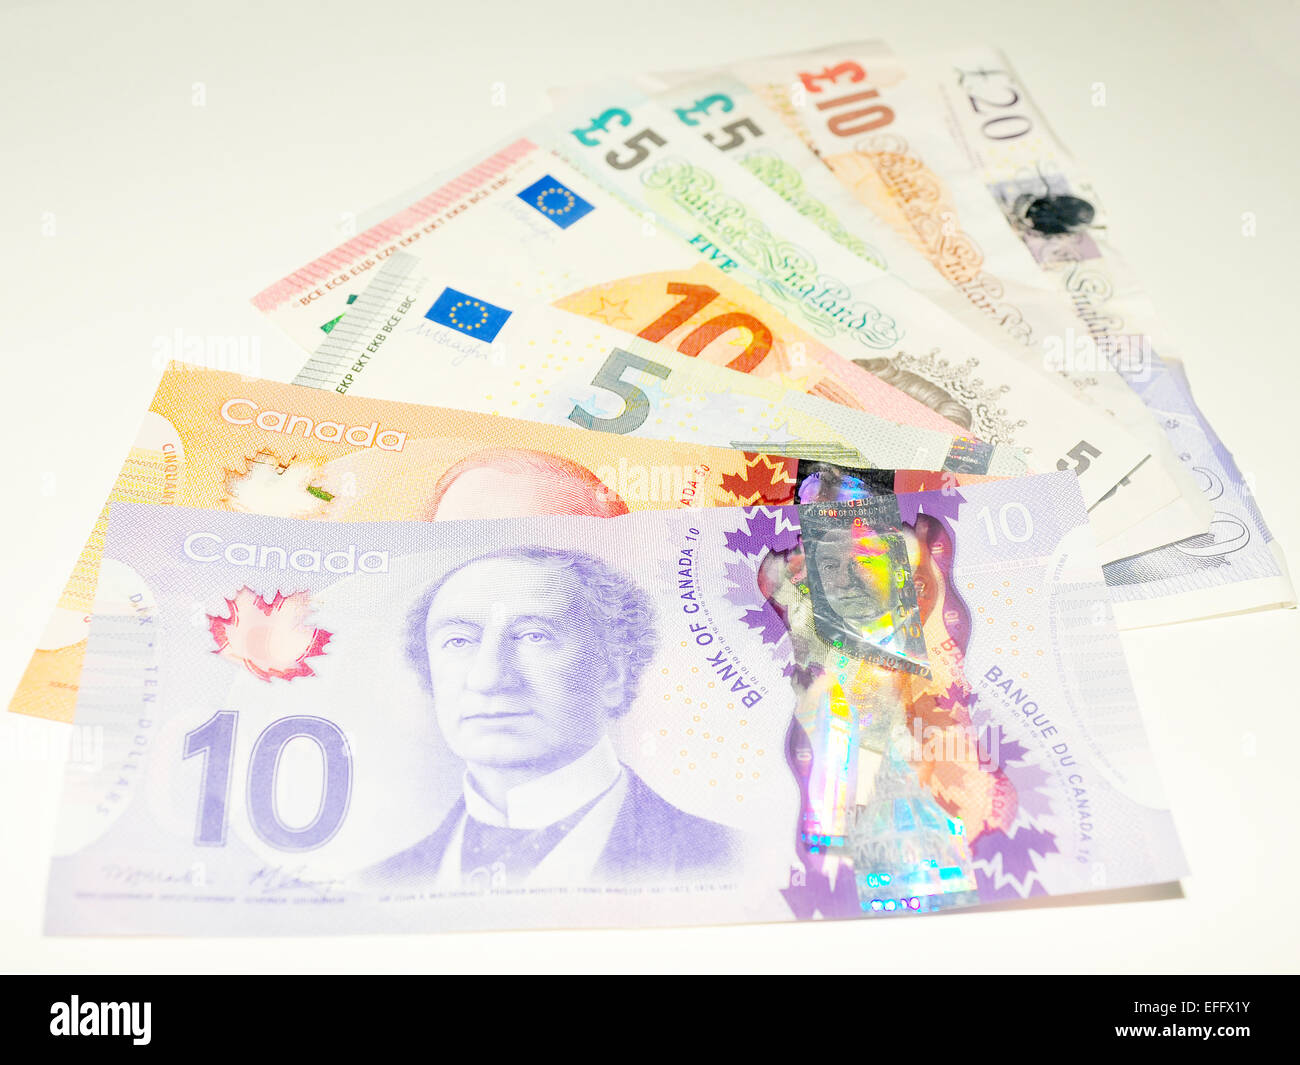 How much is 120 euros in canadian dollars советник форекс это